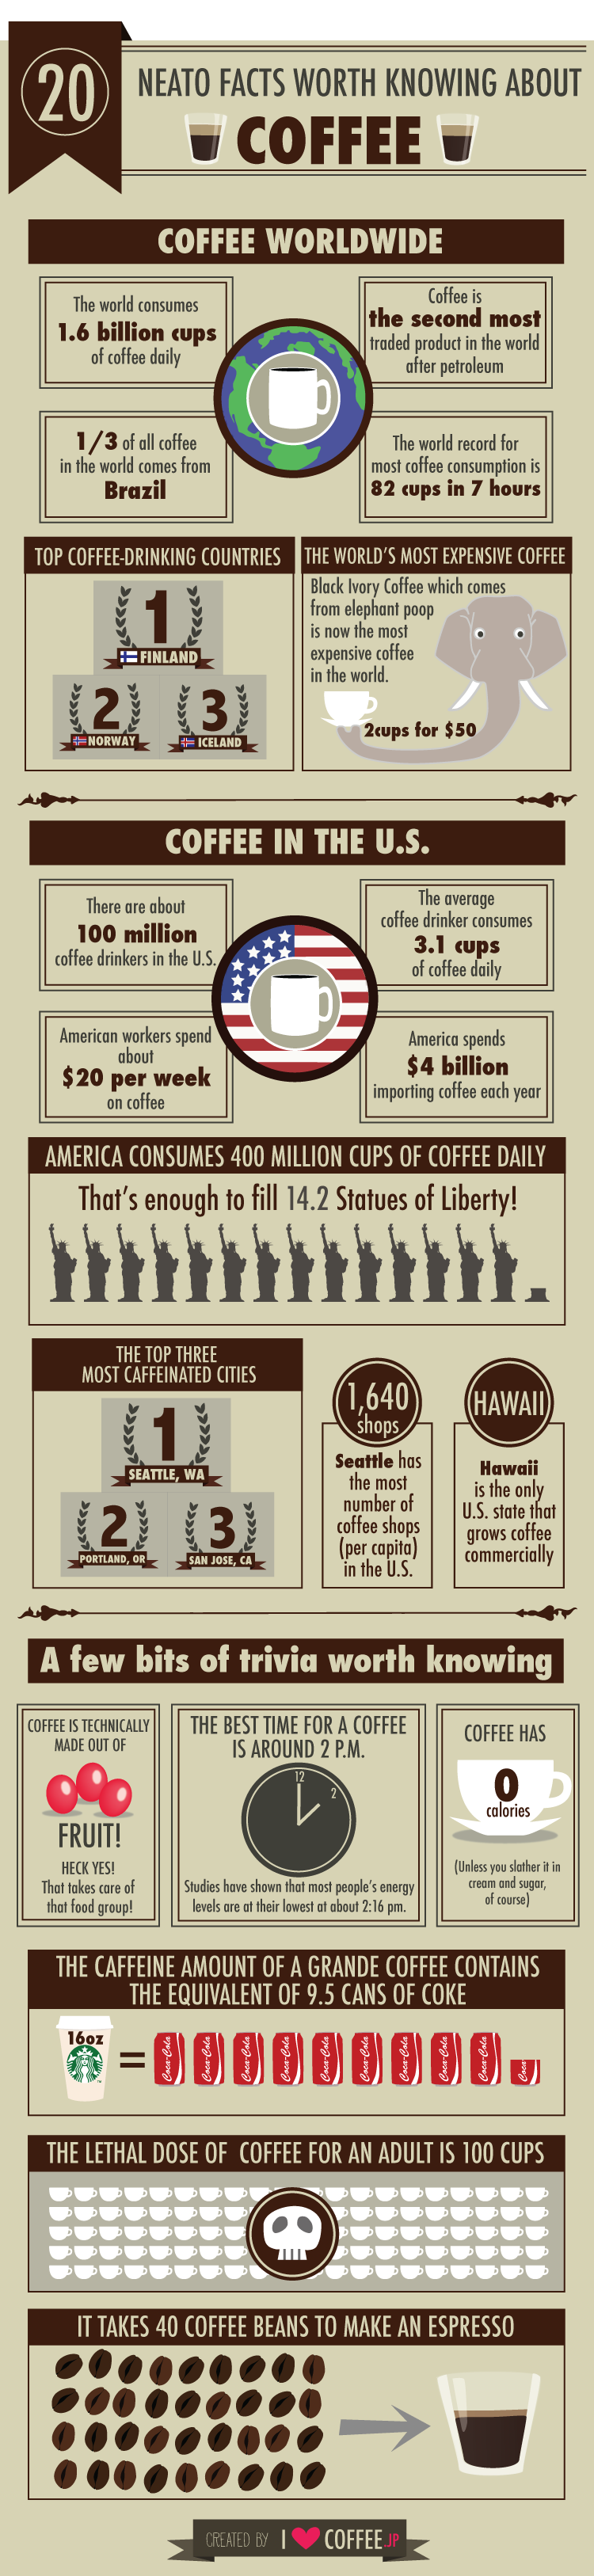 20 Neato facts worth knowing about coffee